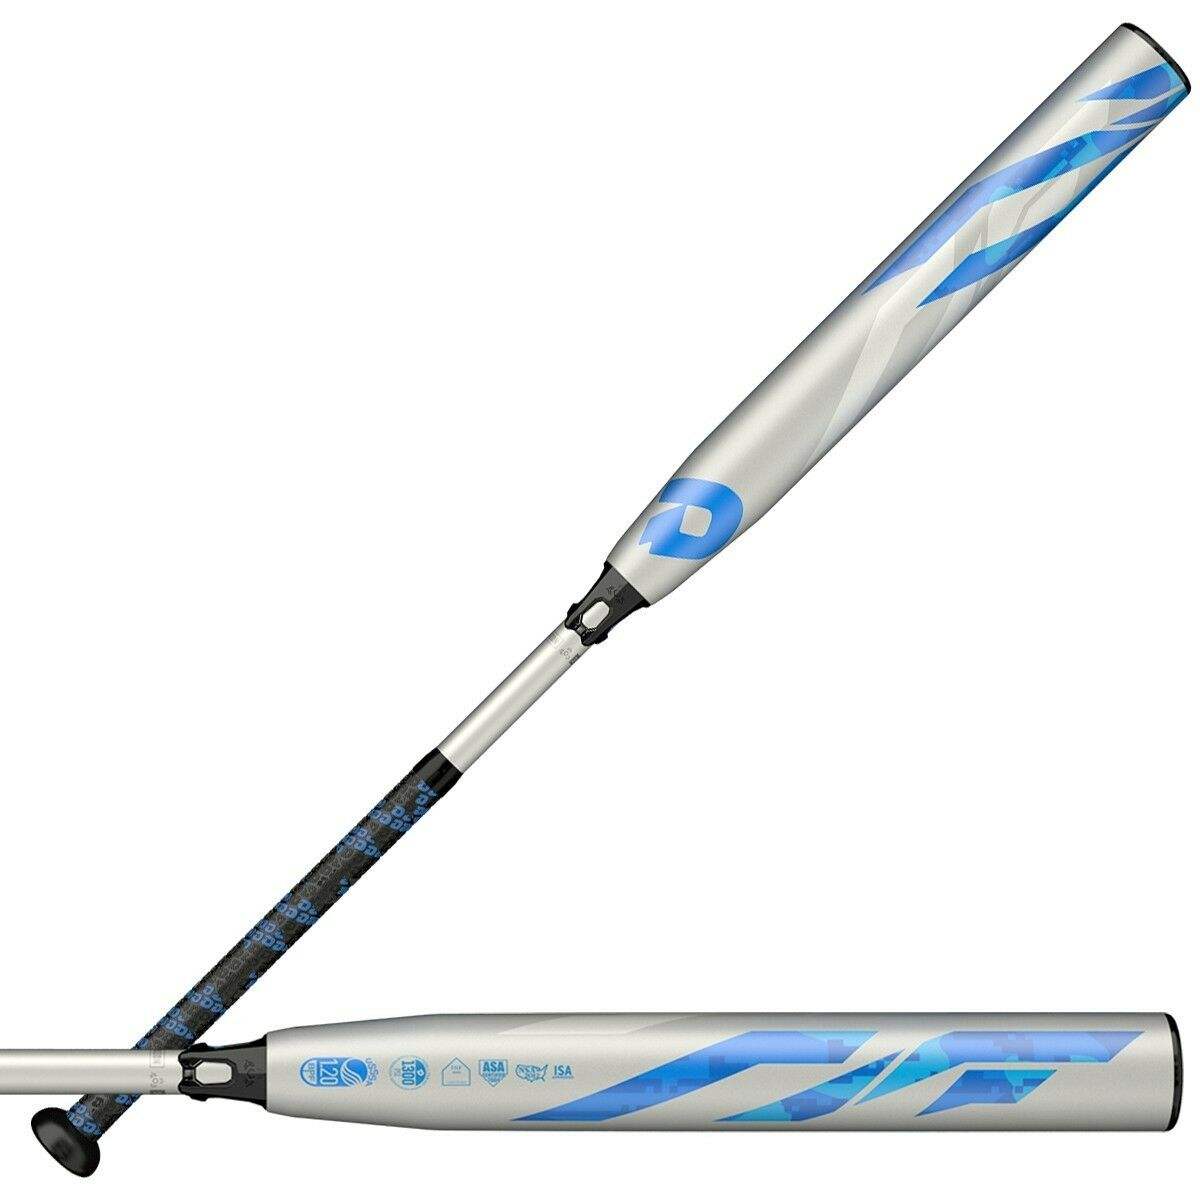 2019 DeMarini Zen Fastpitch Softball Composite Softball Bat Bat Bat 29 18 -11 WTDXCFS-19 52b79e